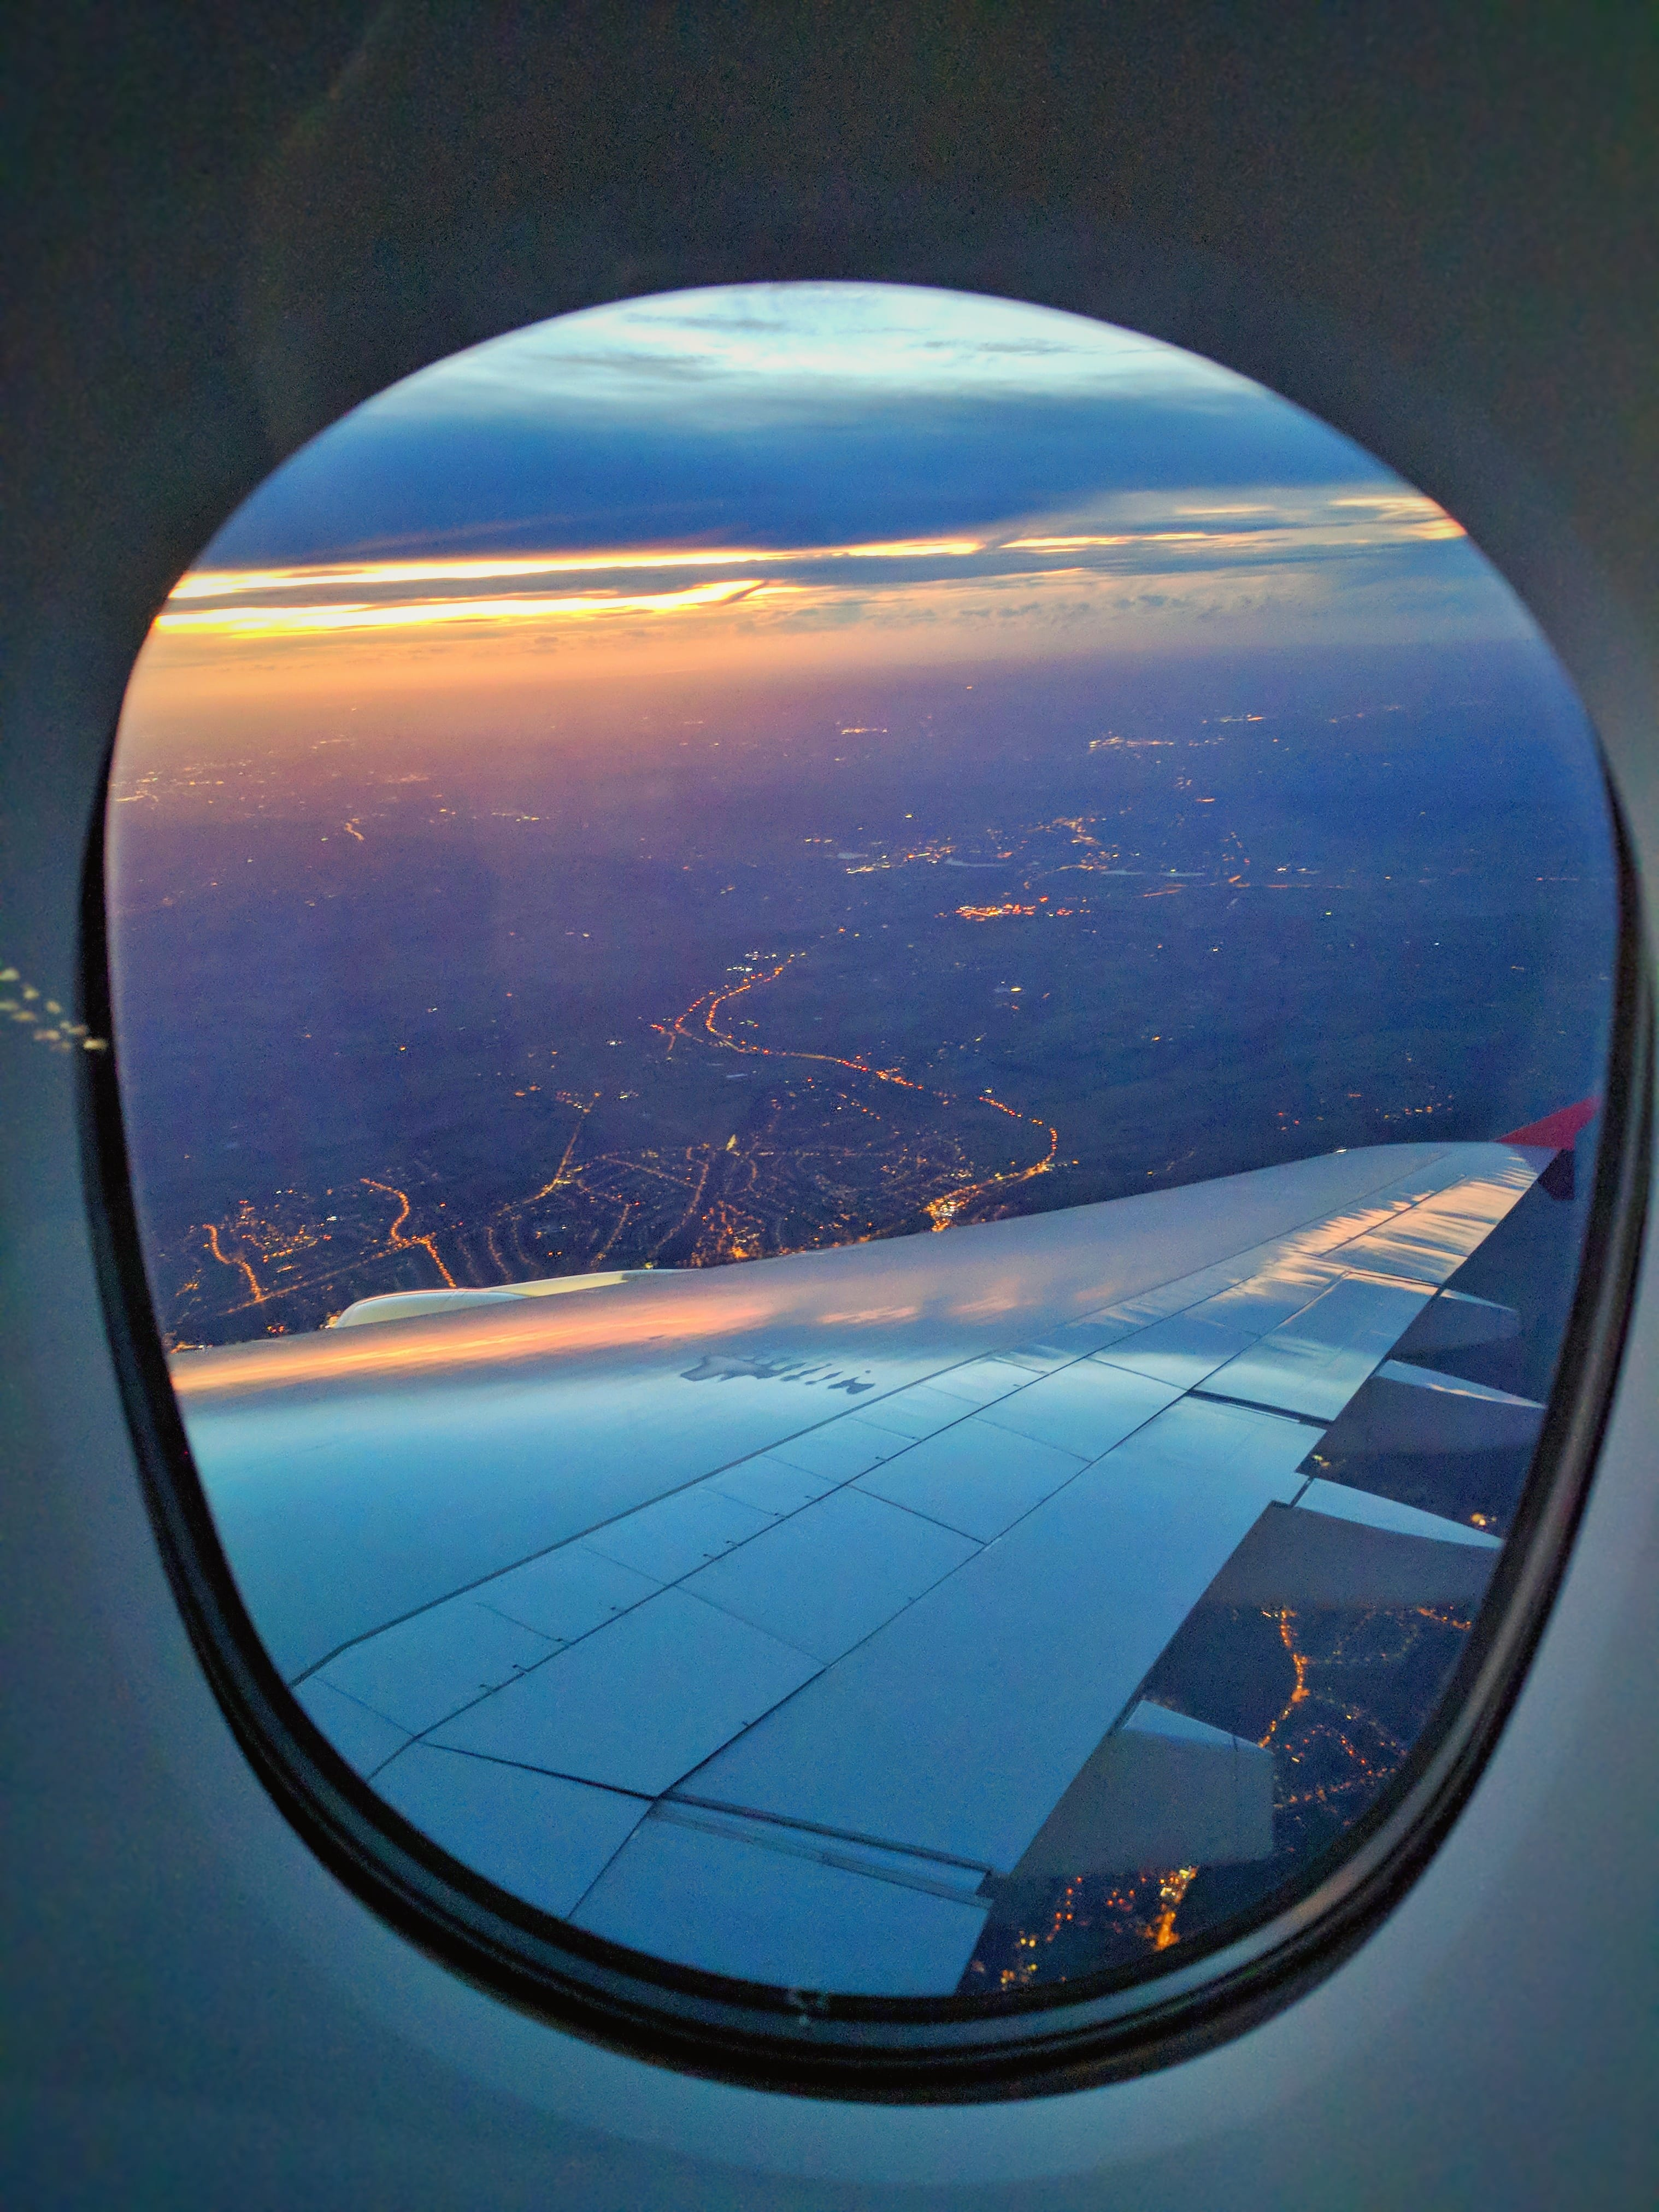 cool airplane window pictures